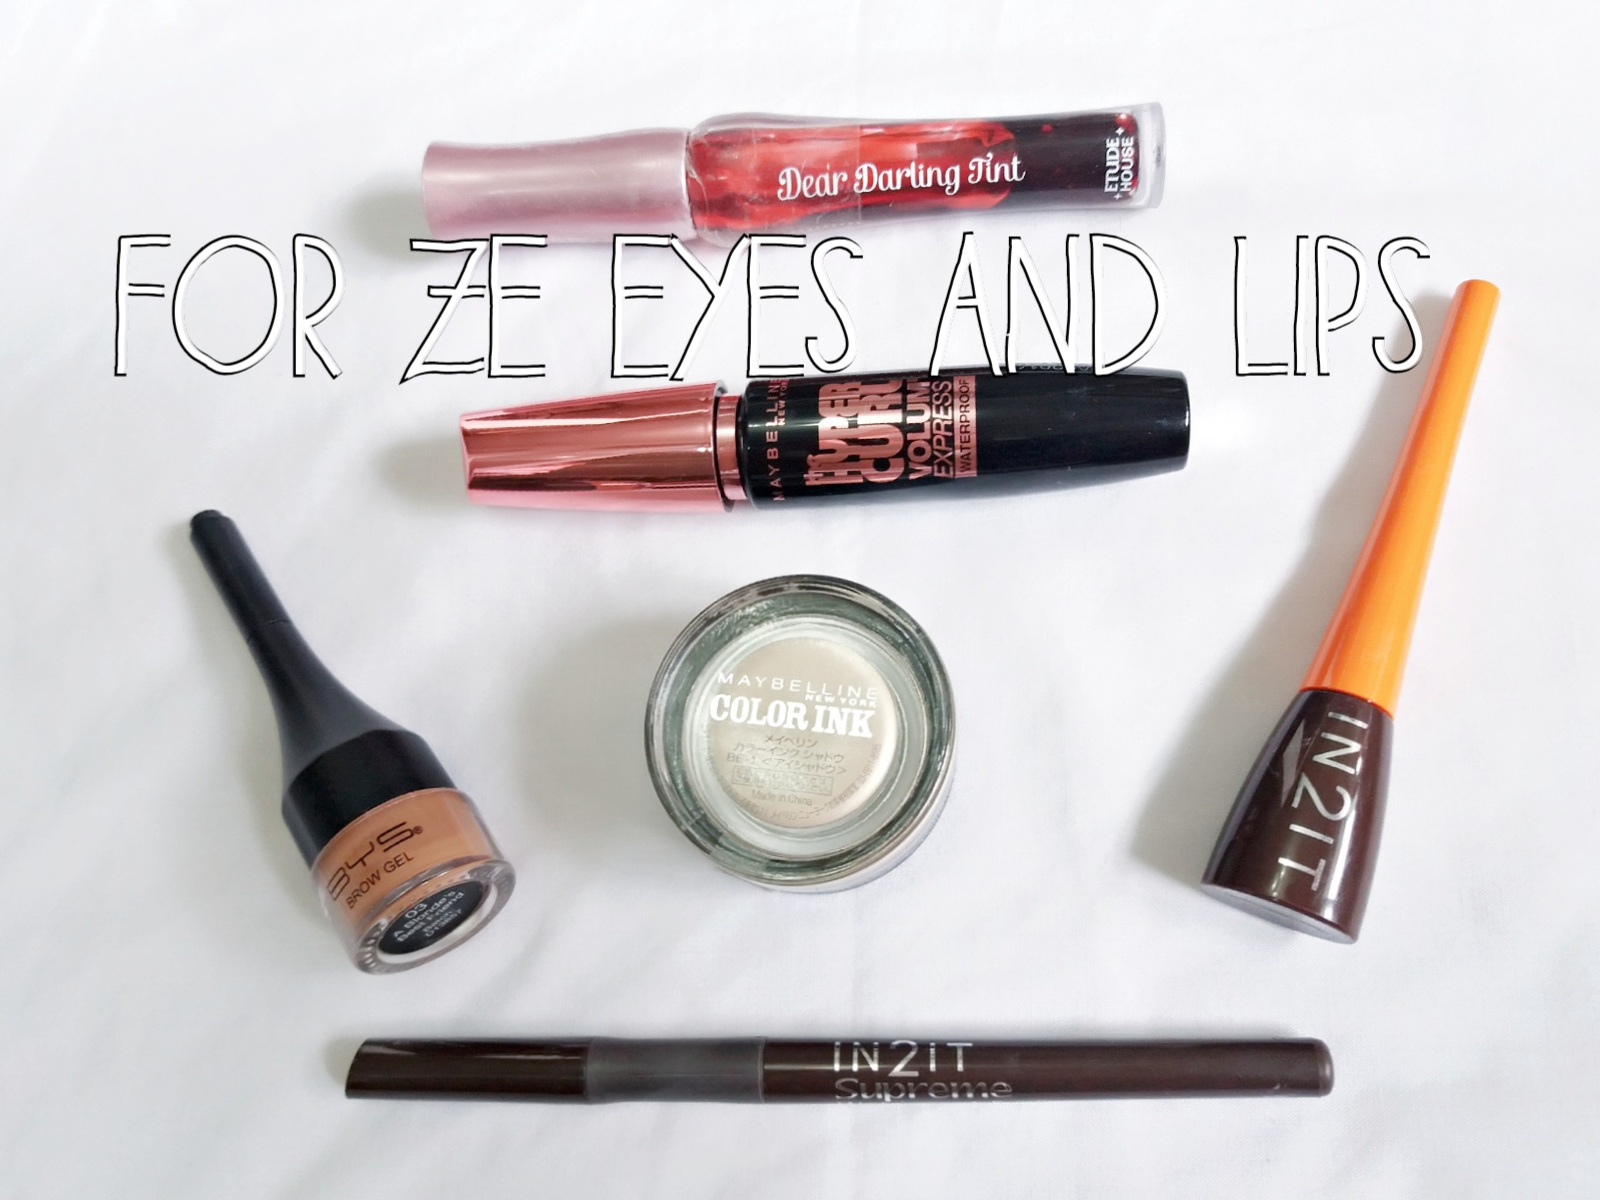 poshmakeupnstuff.blogspot: my affordable make up routine: lips